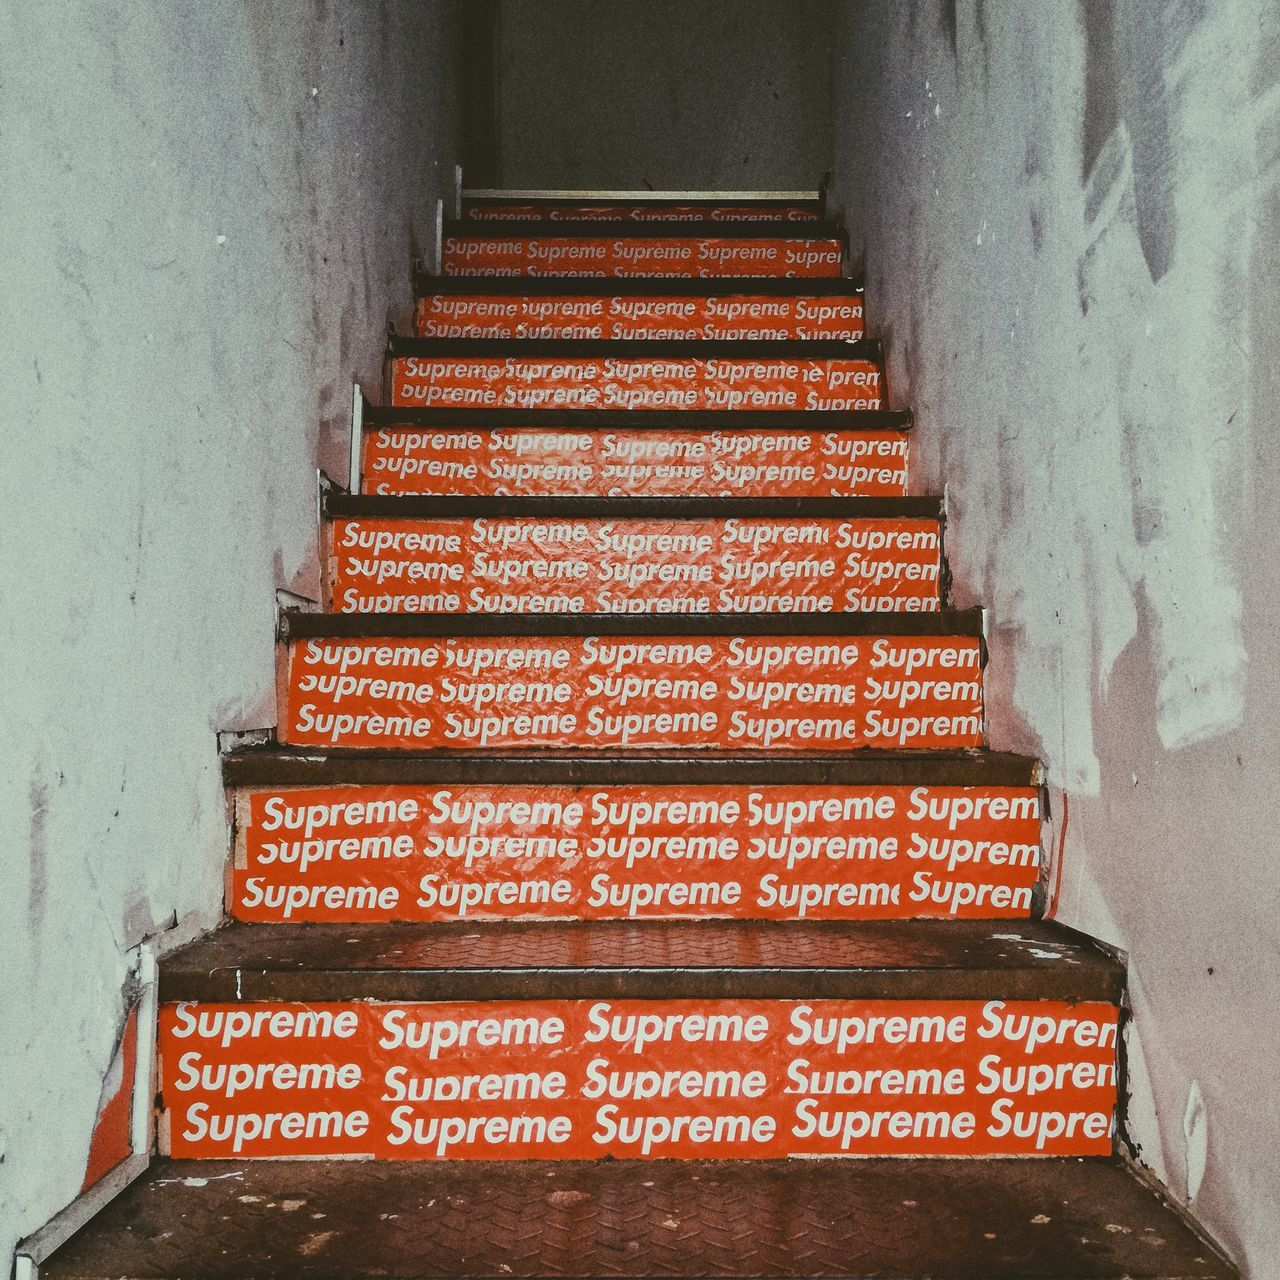 Supreme. steps and staircases indoors day supreme supremenyc streetphotography Street Life hypebeast hype highsnobiety